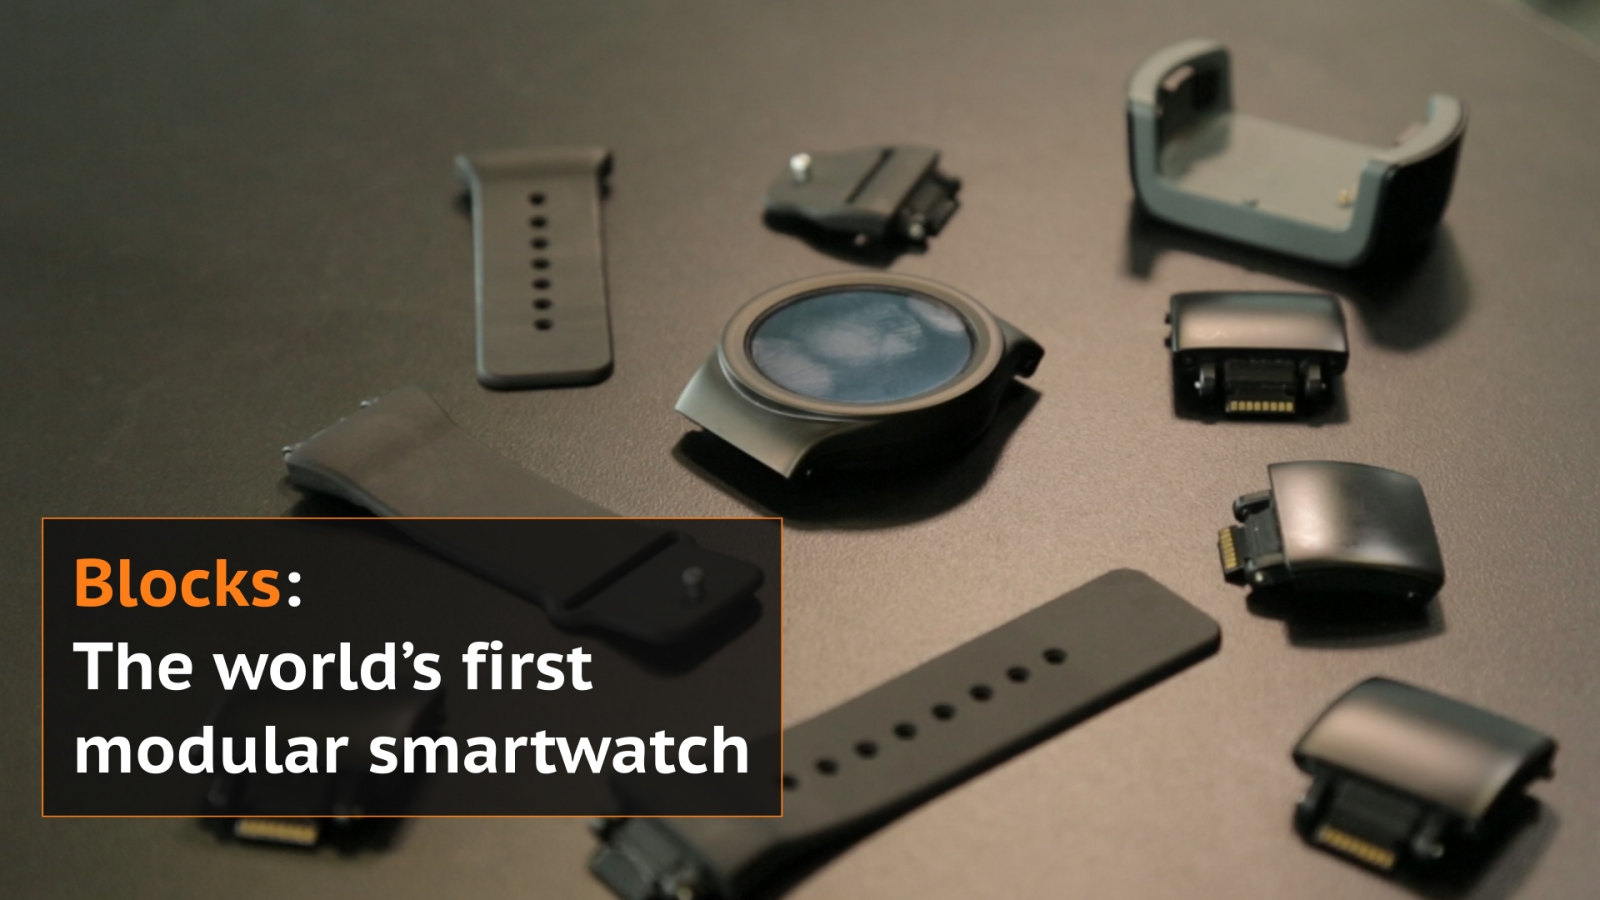 Blocks: The world's first modular smartwatch